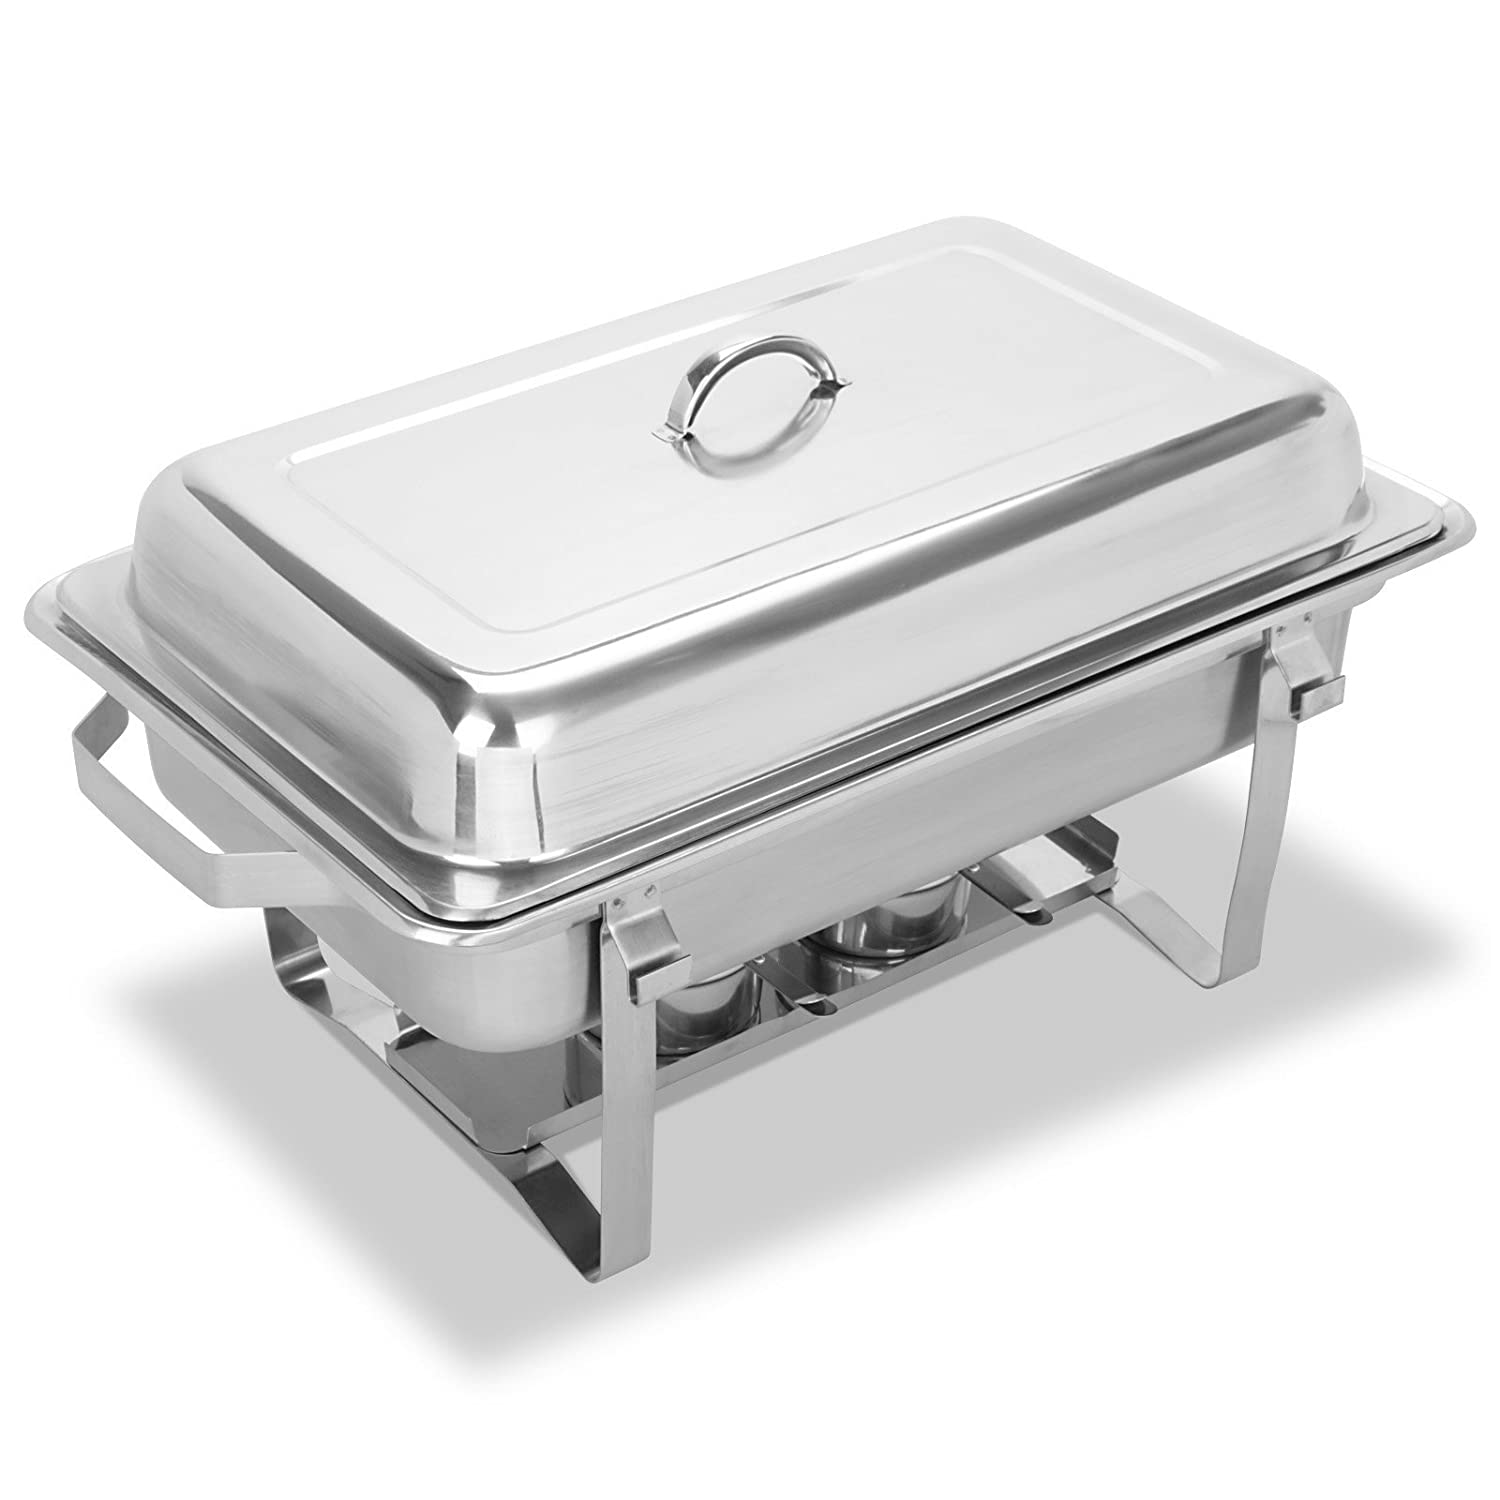 Milan Chafing Dish Pack of 1 x GN 1//1 stainless steel chafer.